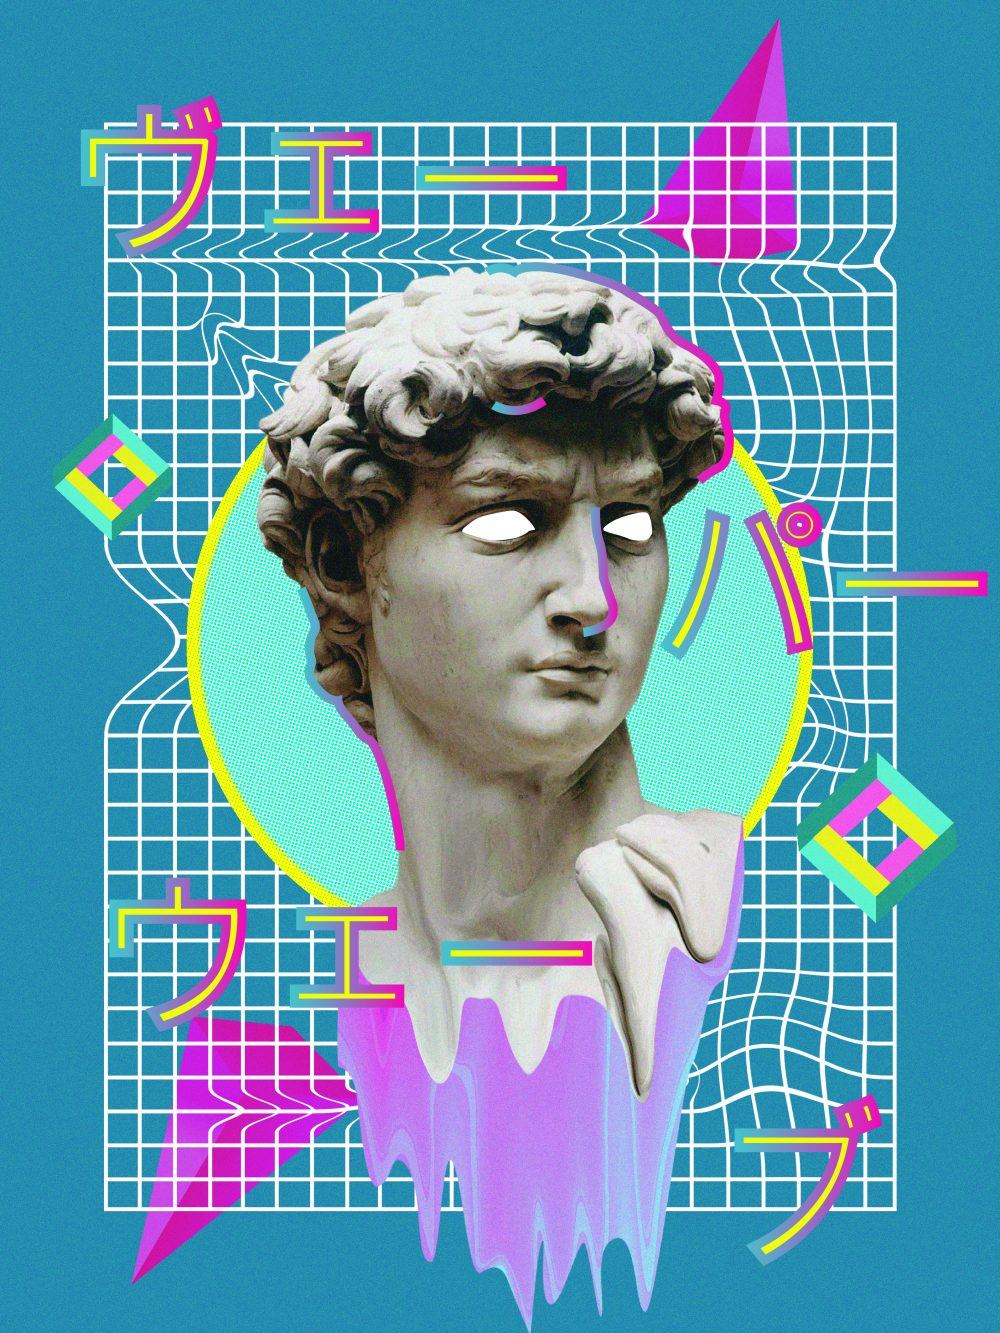 Enter the virtual barangay: a look at the vaporwave scene